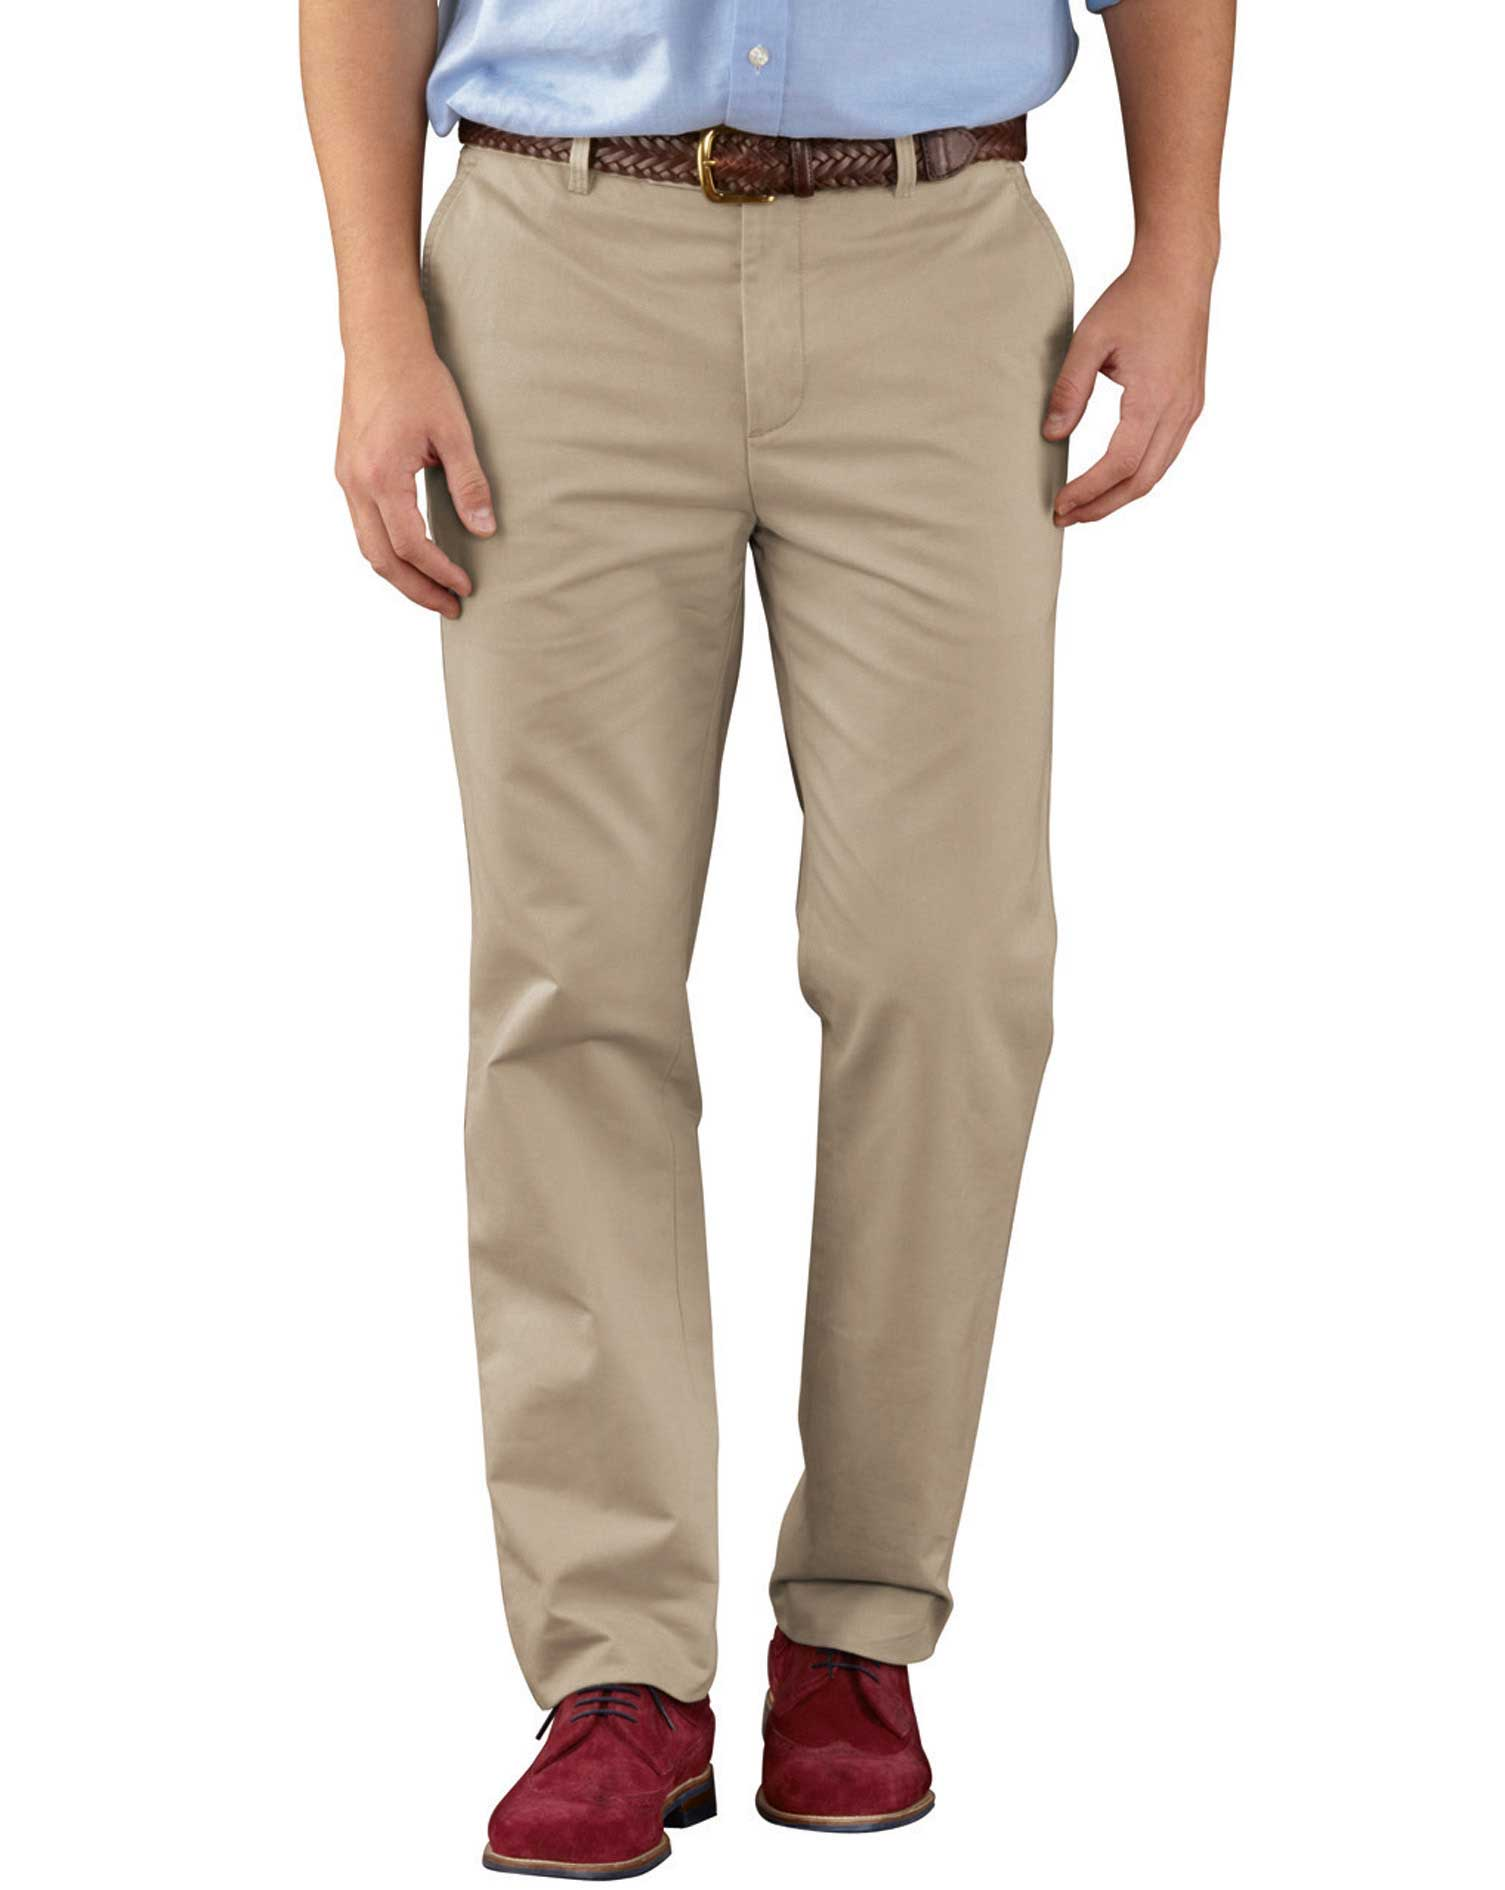 Stone Slim Fit Flat Front Weekend Cotton Chino Trousers Size W38 L38 by Charles Tyrwhitt